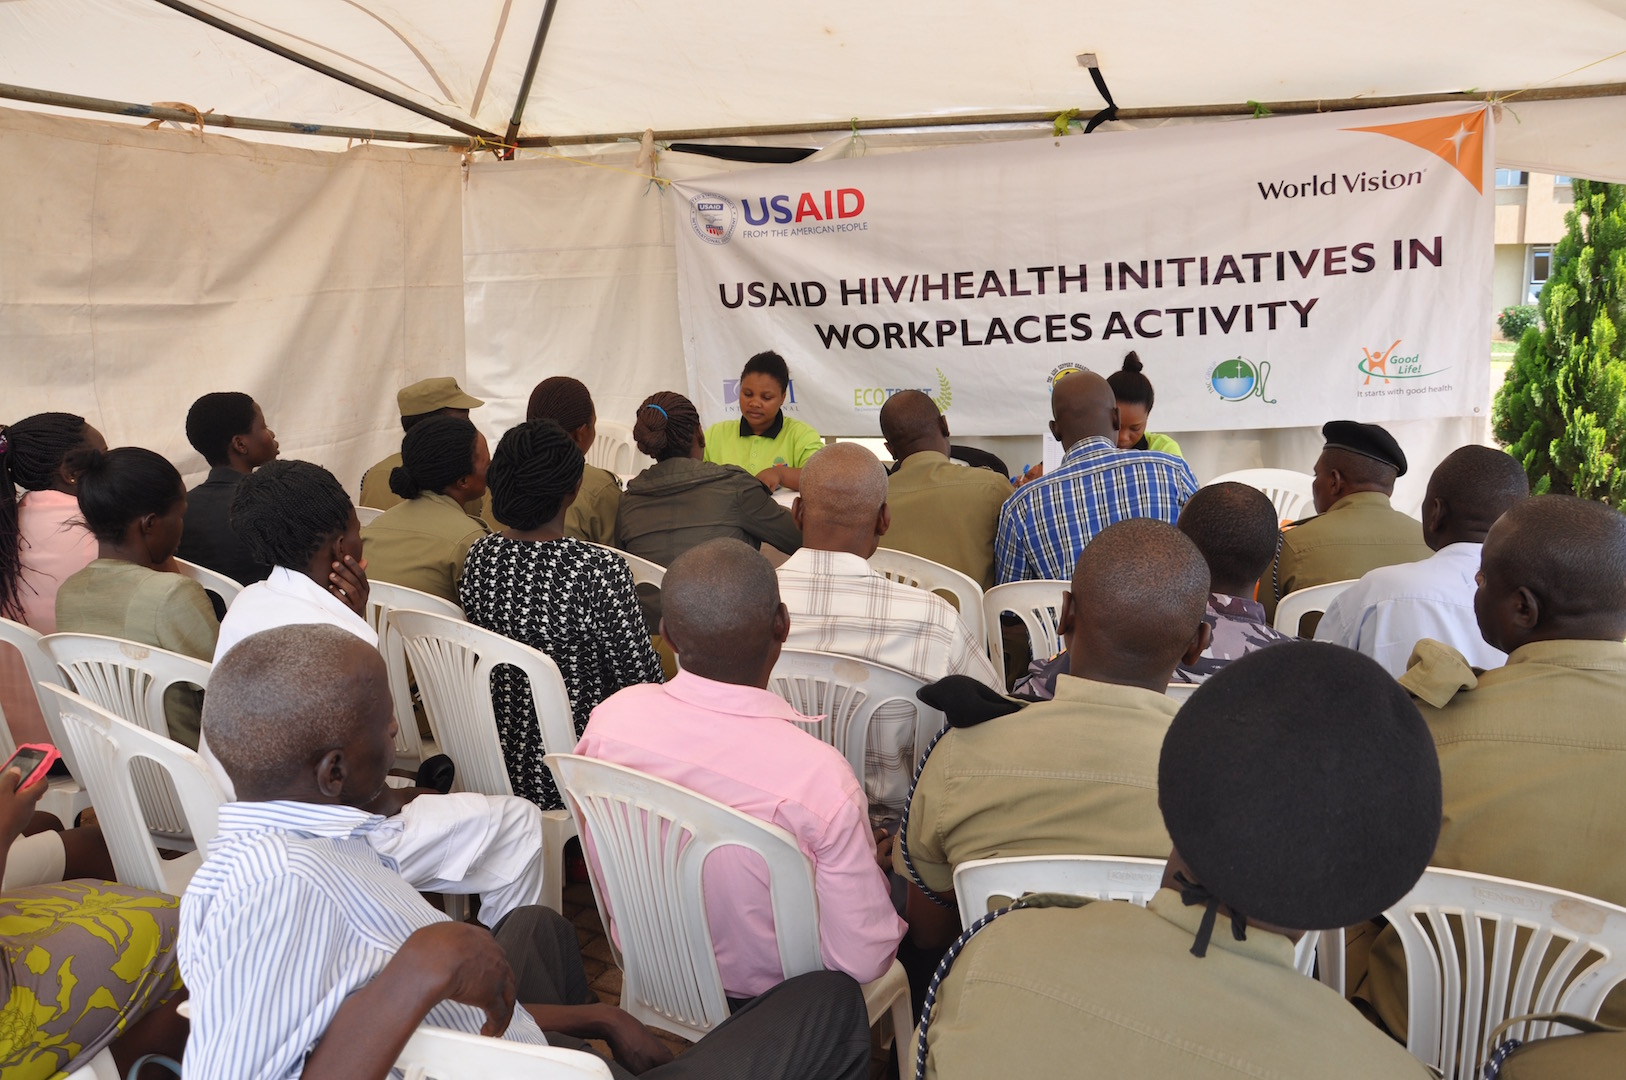 HIWA Project, Scaling up access to HIV/Health services among